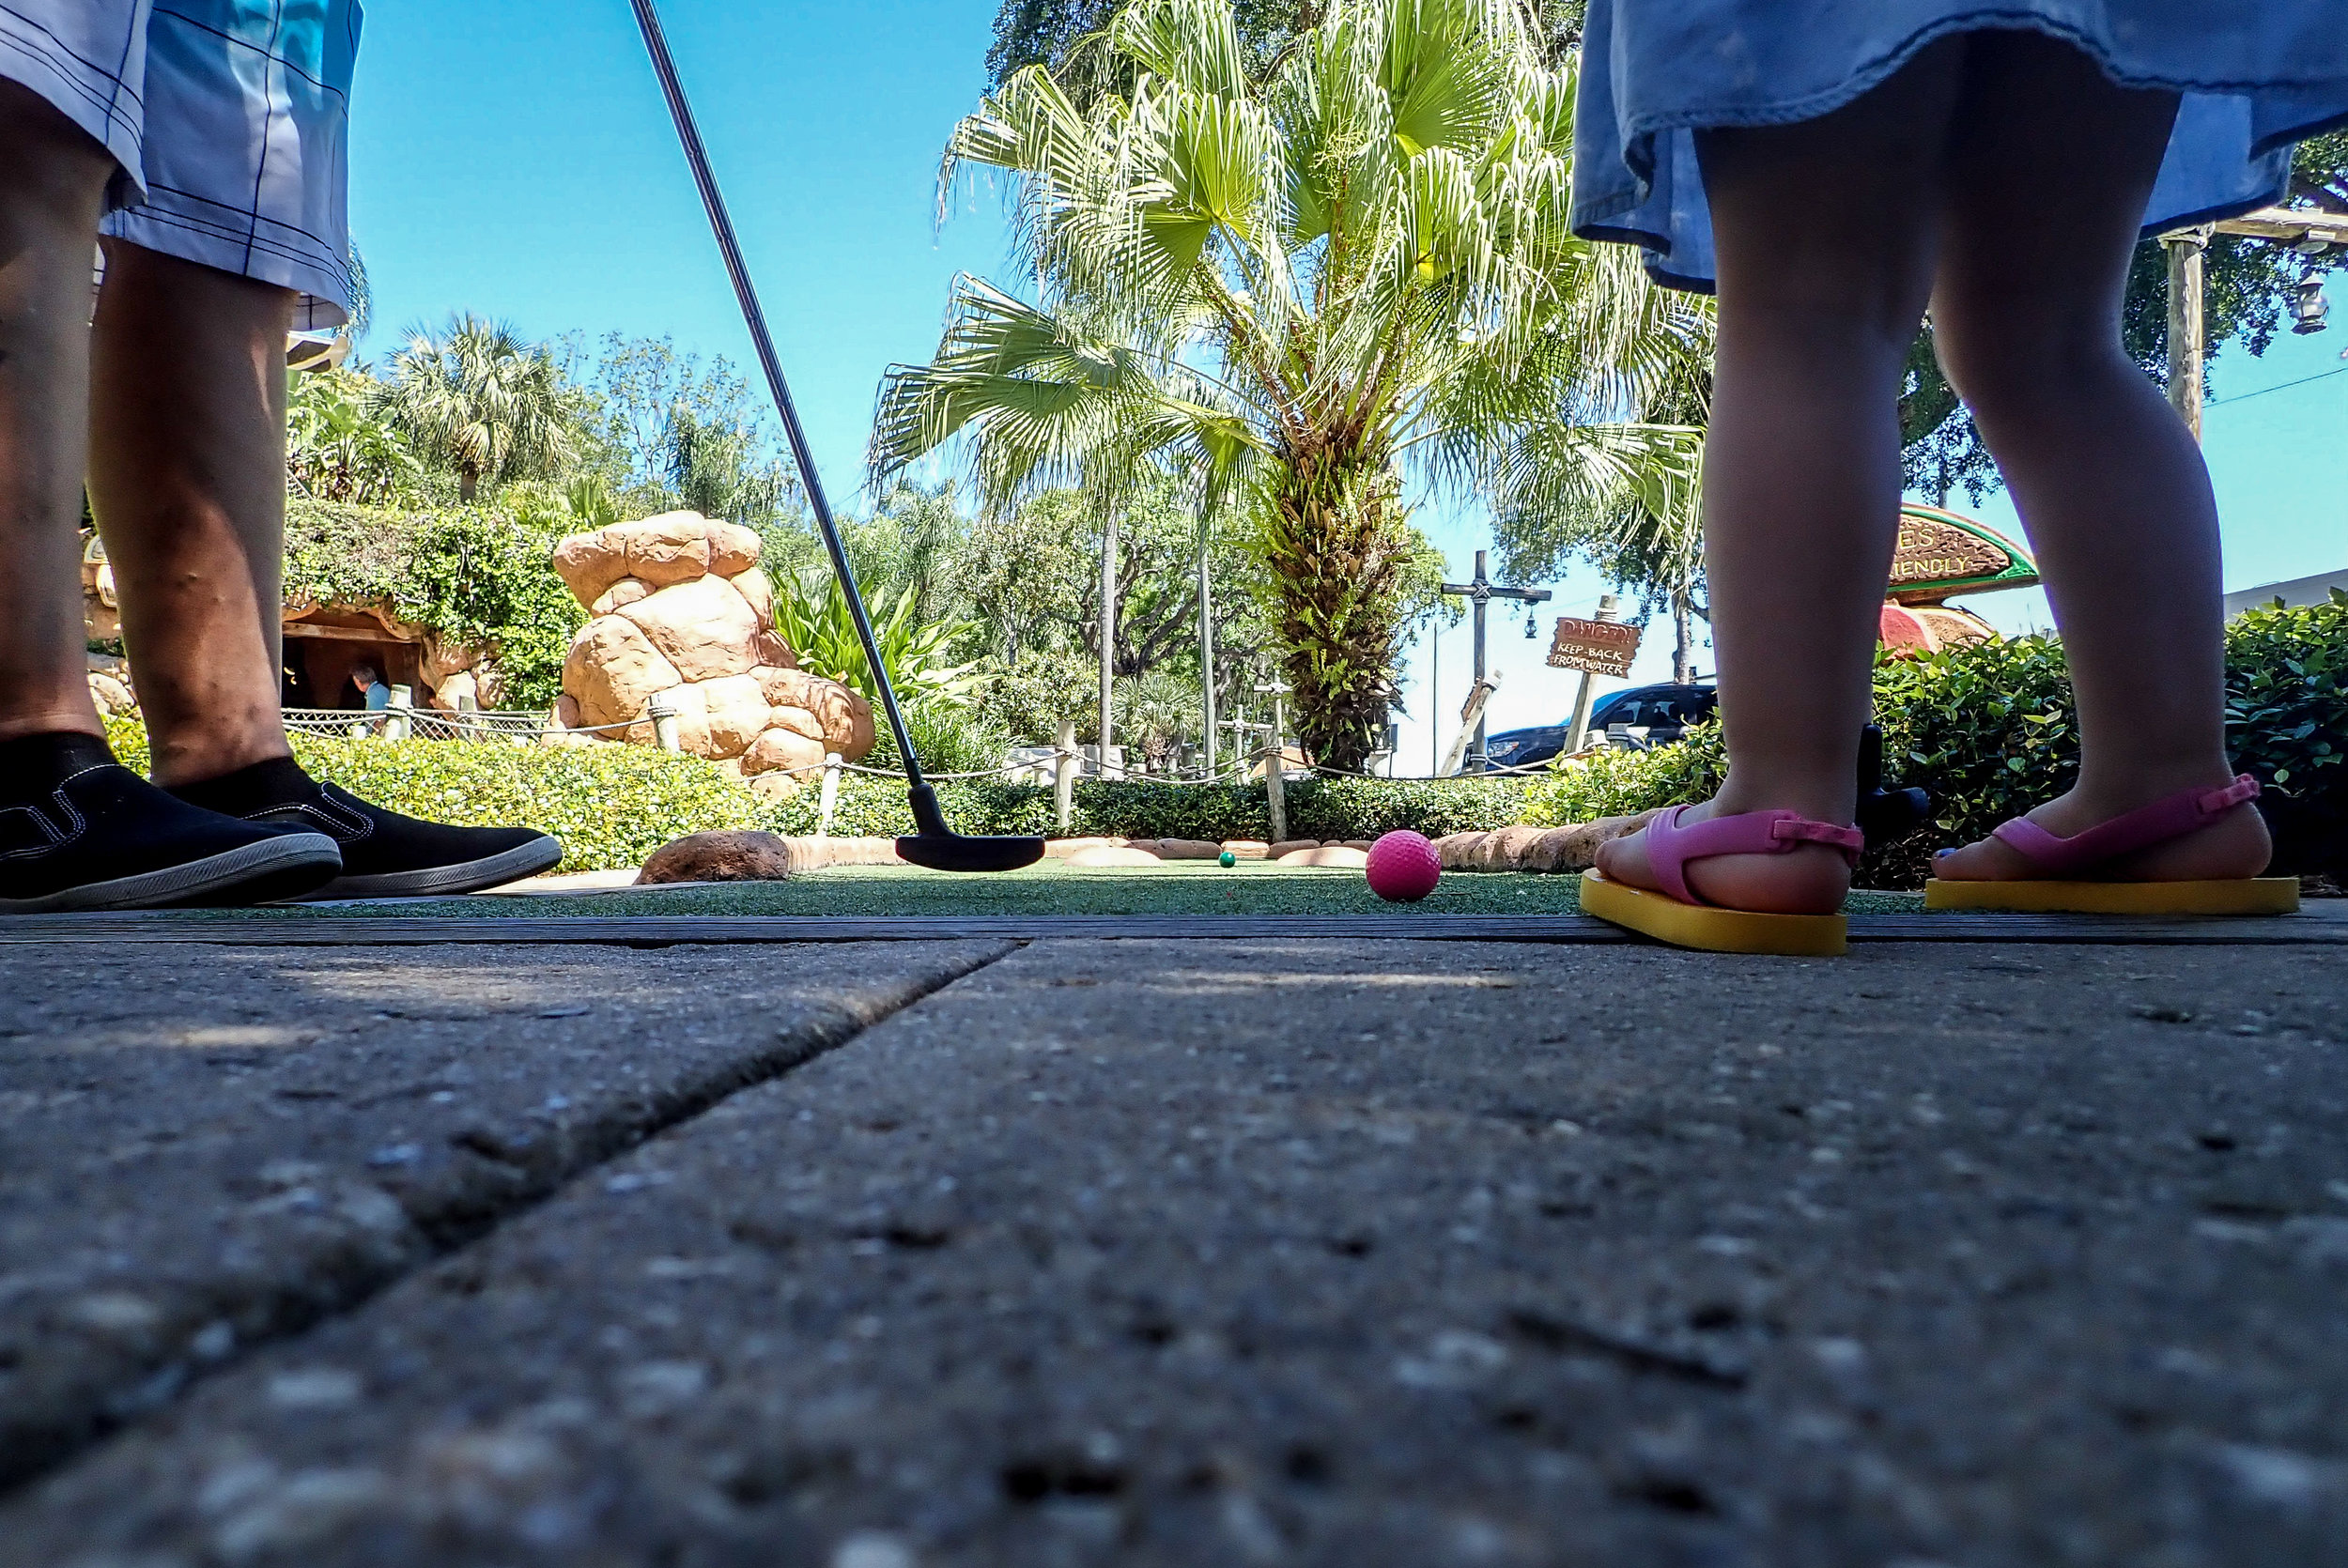 Toddler girl at Congo River Golf in Clearwater, FL.